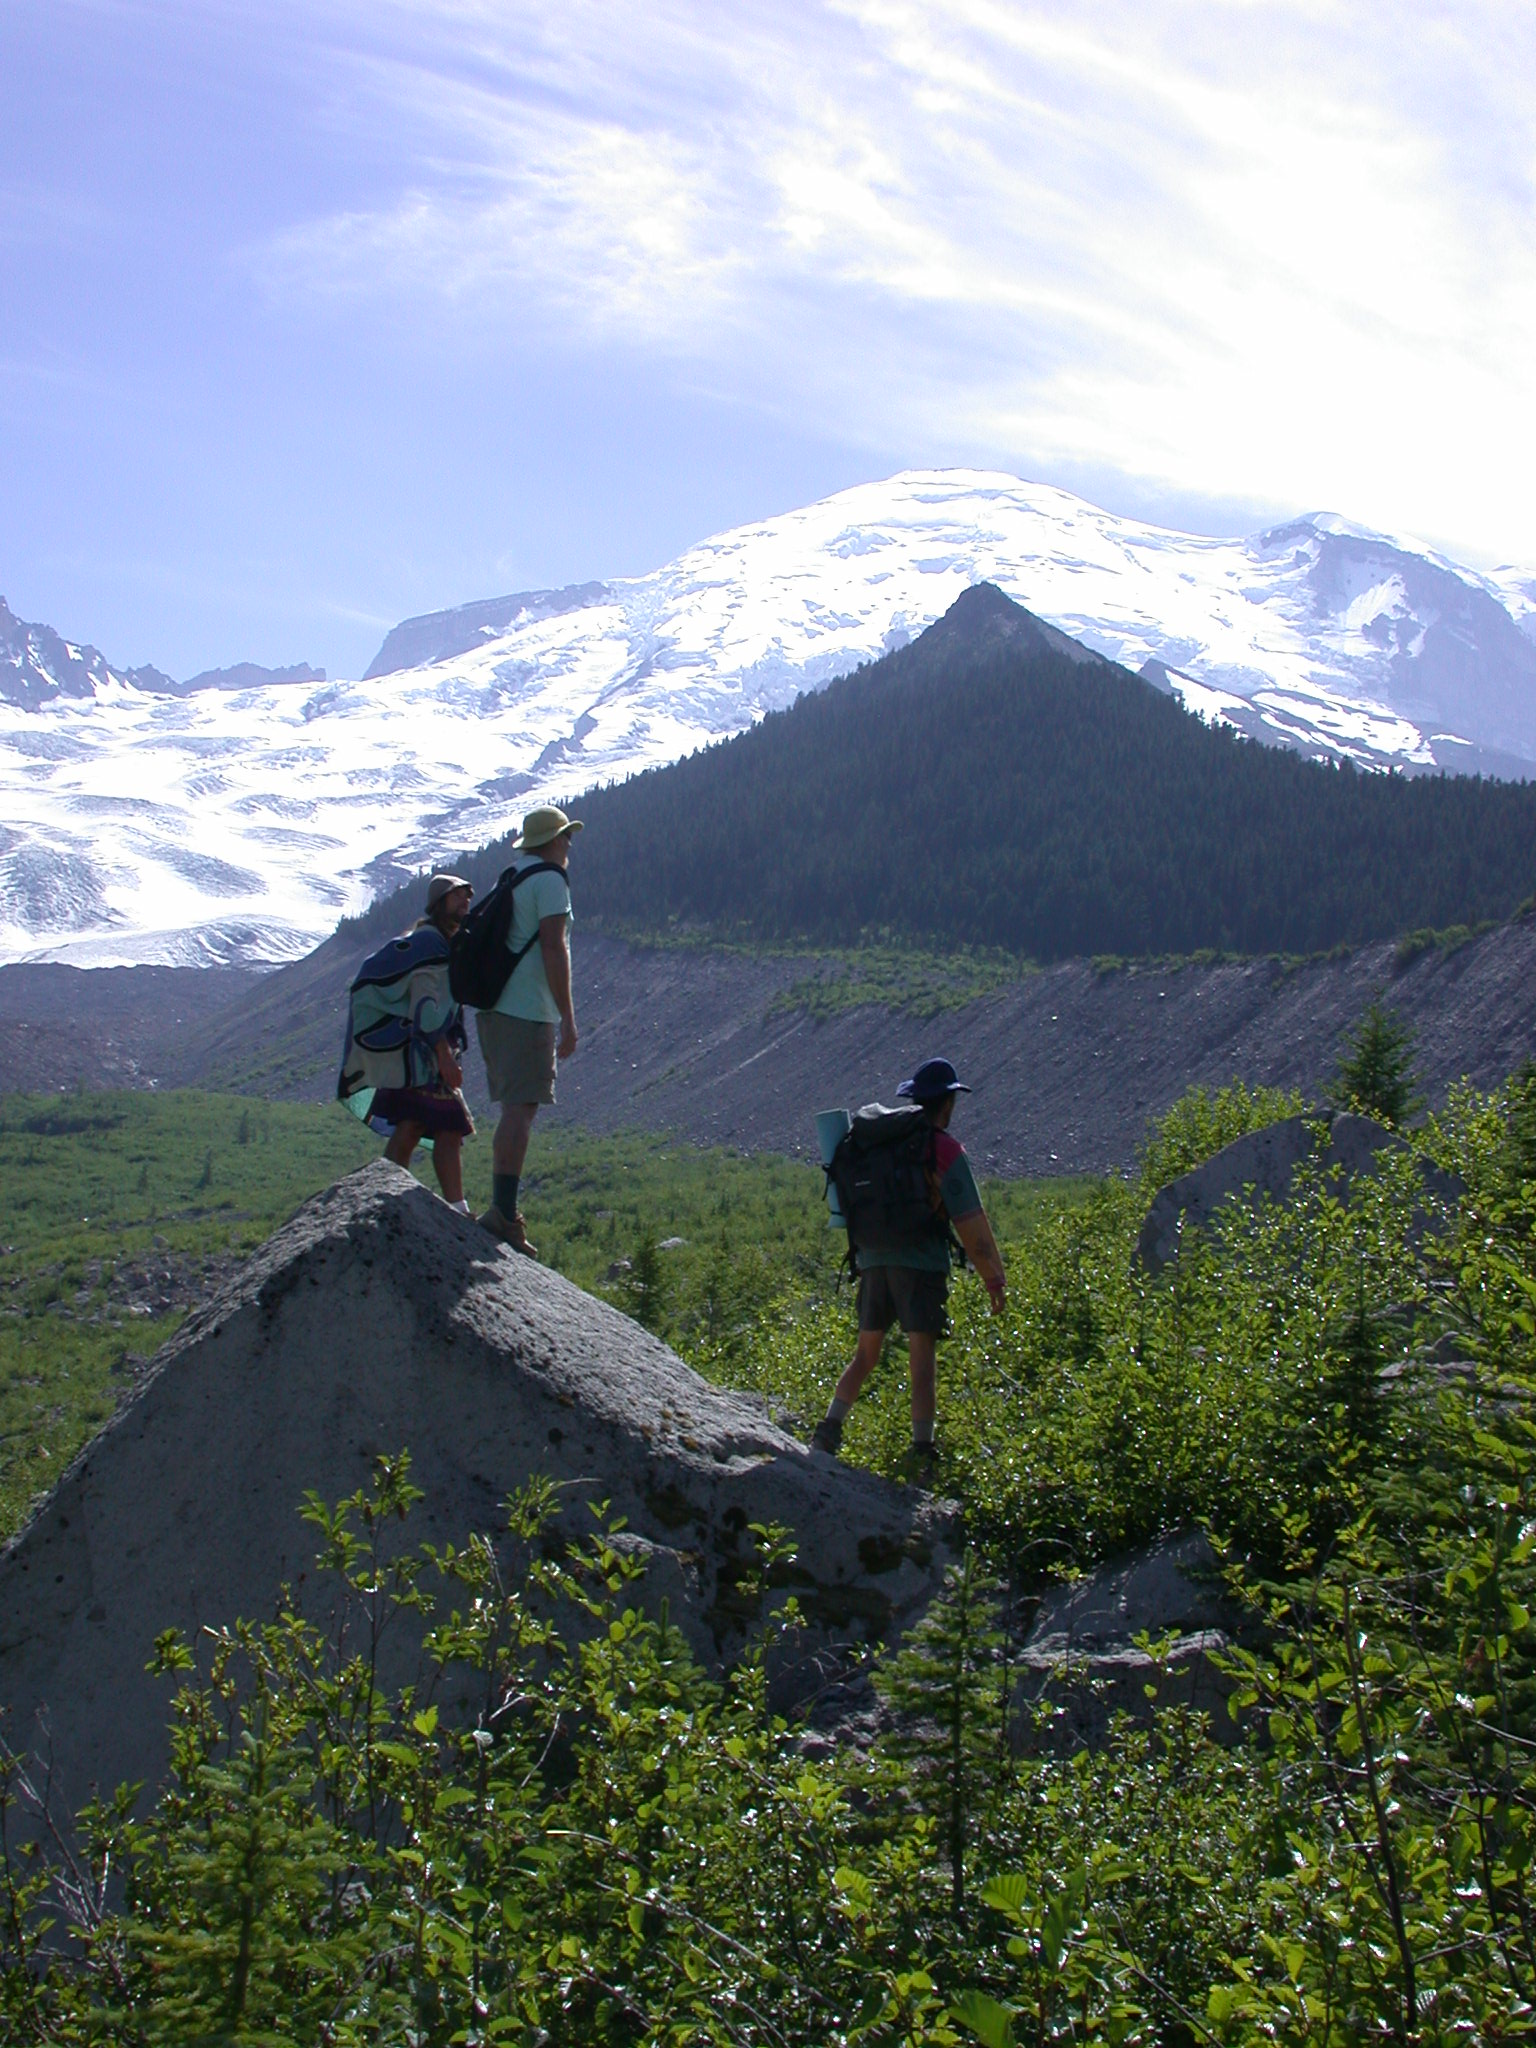 Sierra, Dazzle, and Fruitboy on Glacial Valley Limey Outcrop With View of Pyramid Peak and Mount Rainier Summit